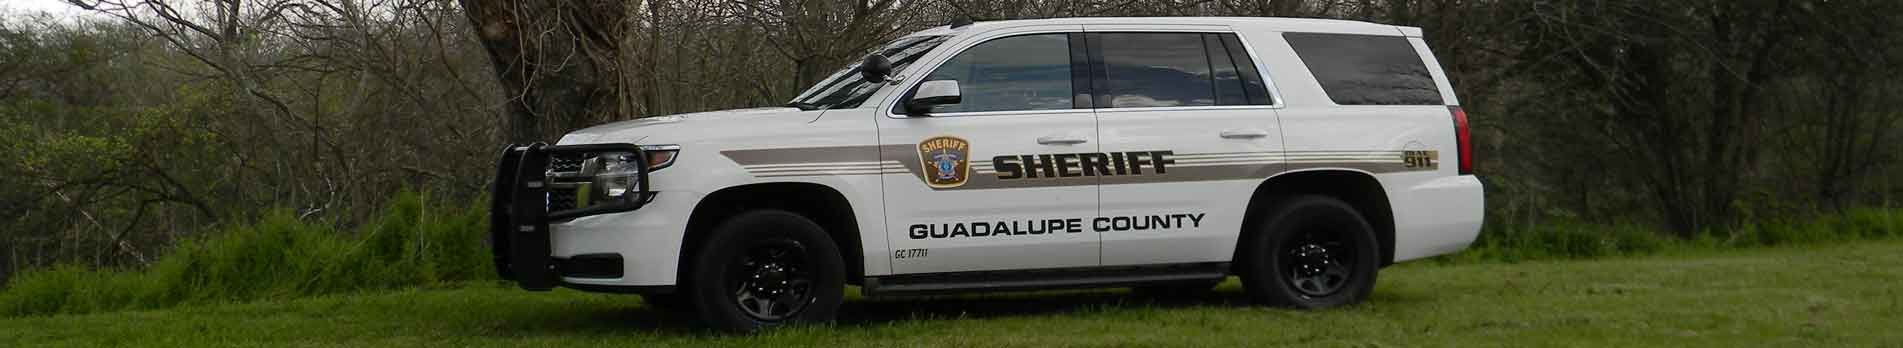 A side view of Guadalupe County sheriff's patrol car.